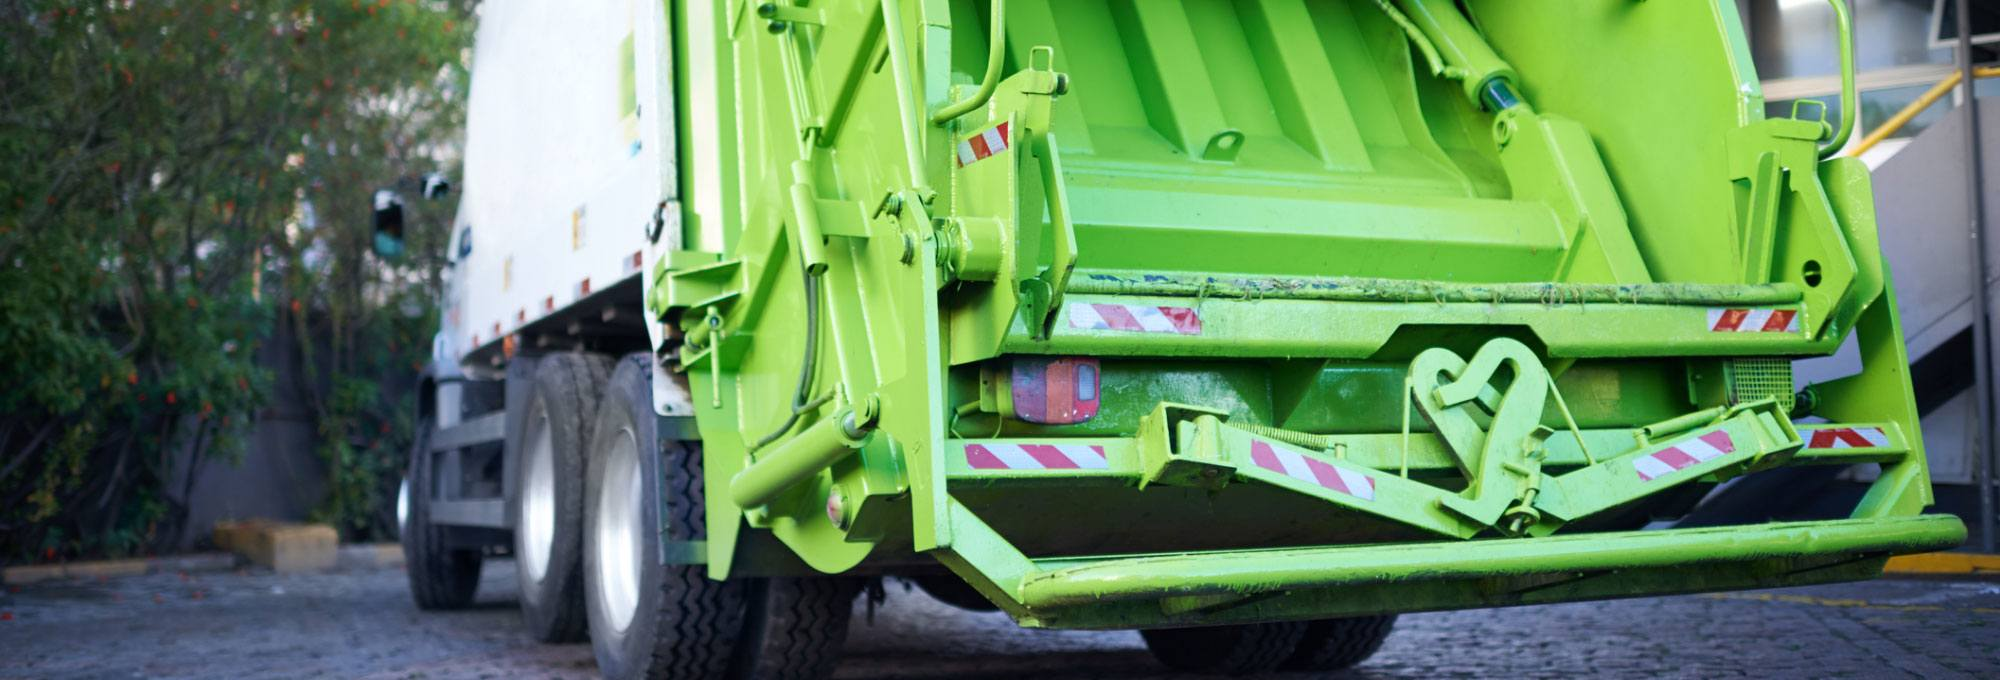 Waste Truck Fueling